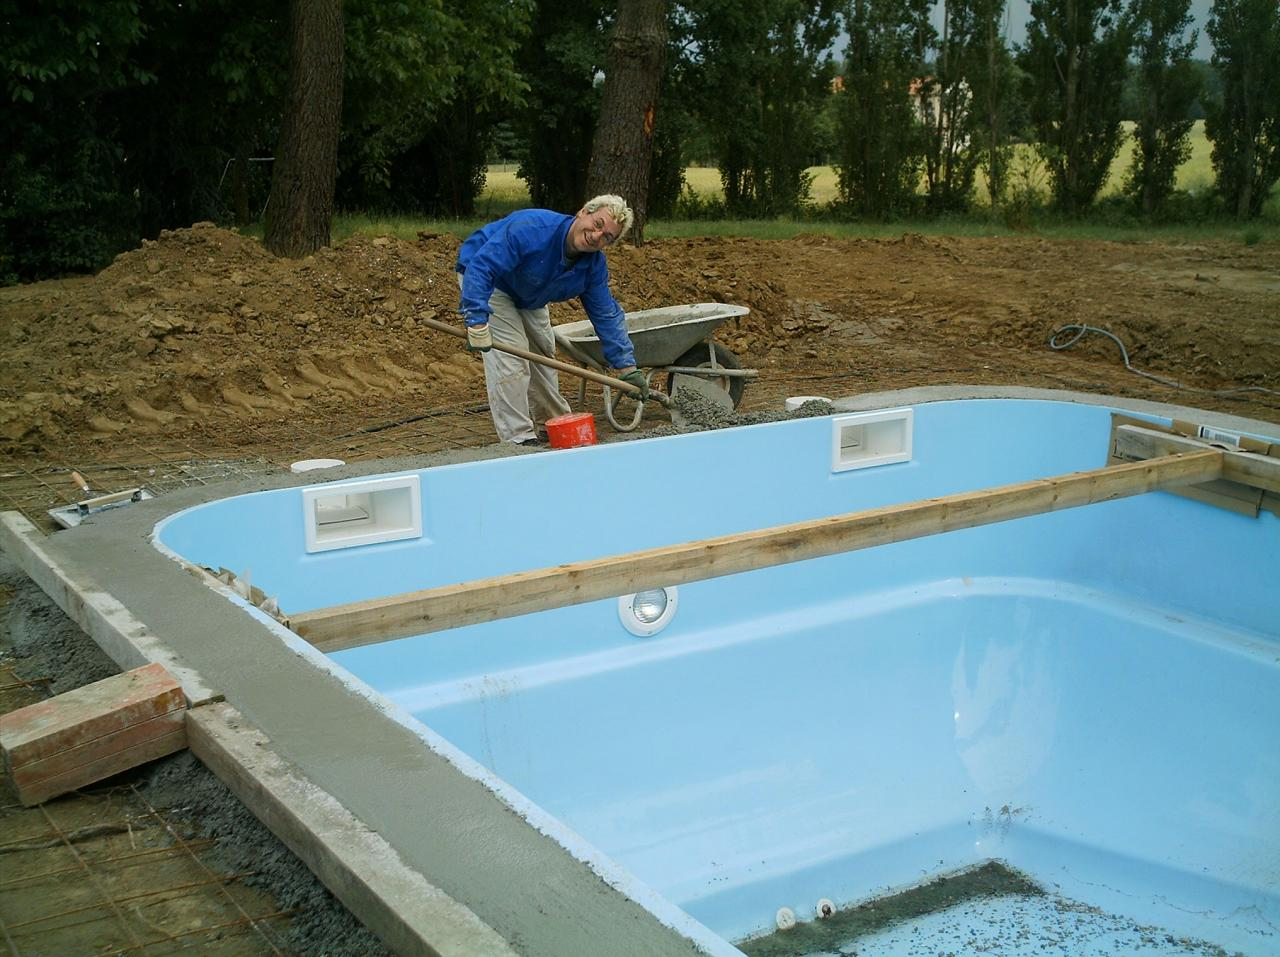 Travaux d une piscine coque comment s y prendre for Photo piscine